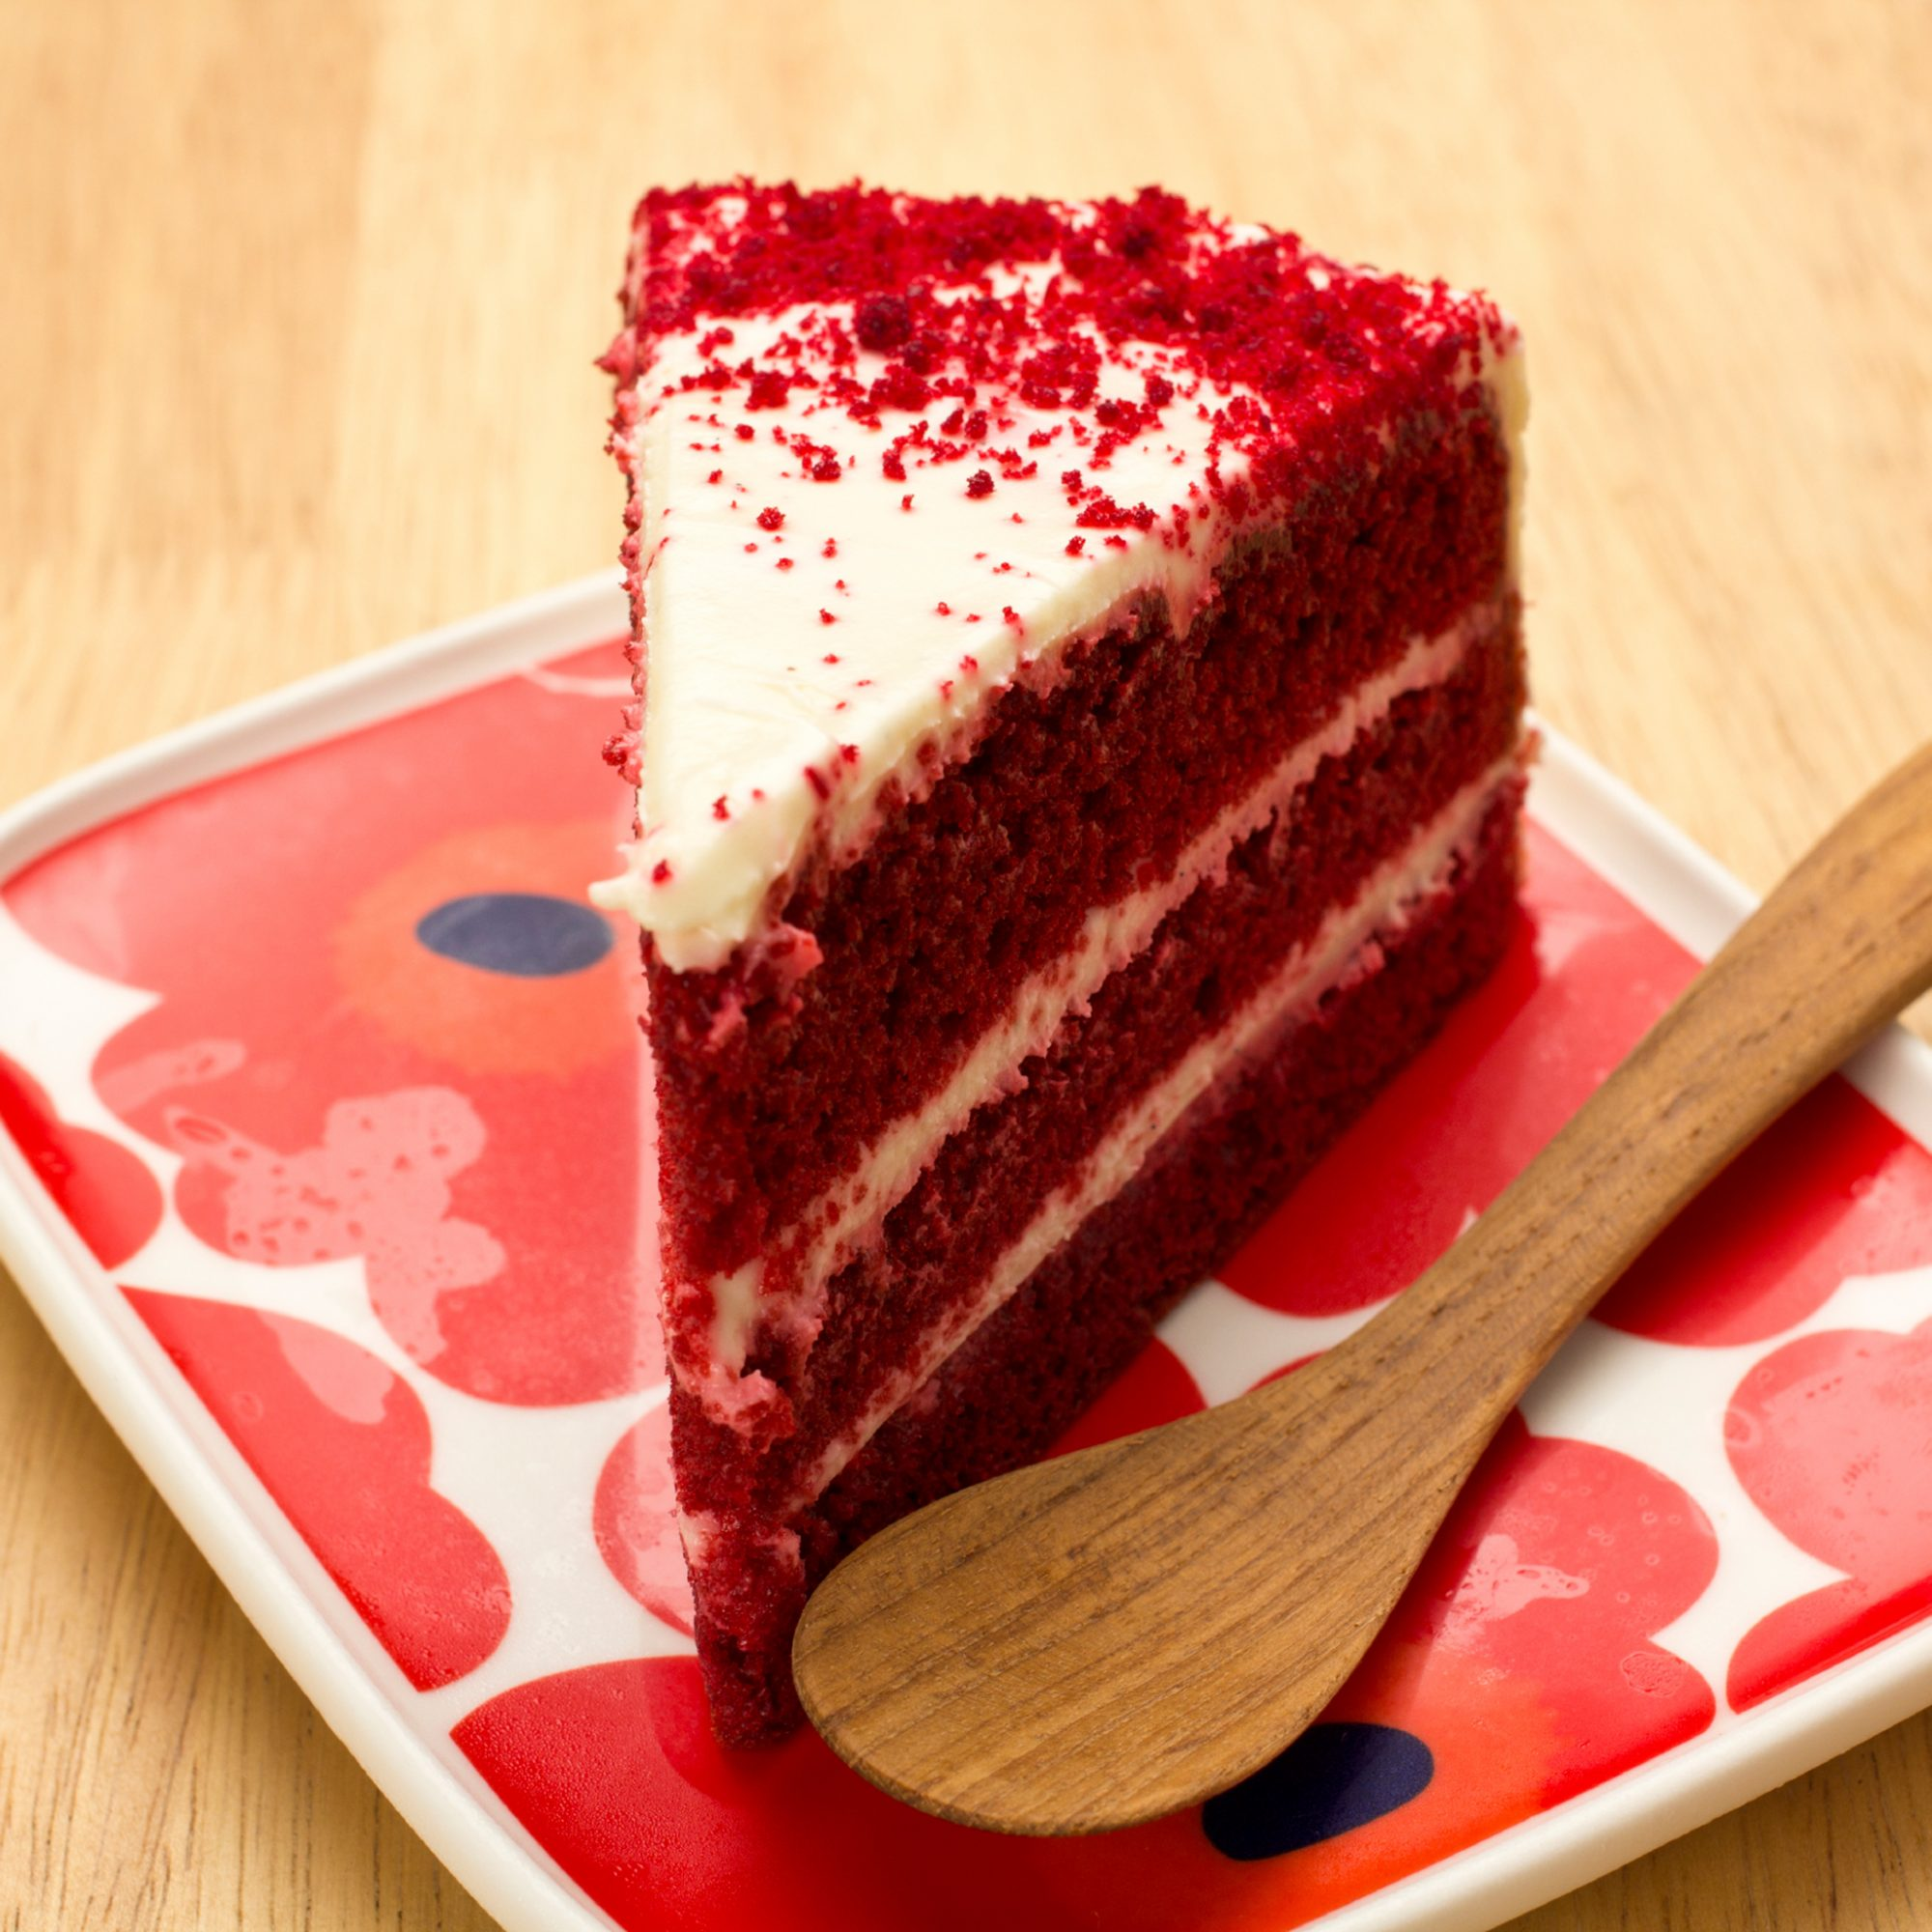 7 Things You Definitely Did Not Know About Red Velvet Cake